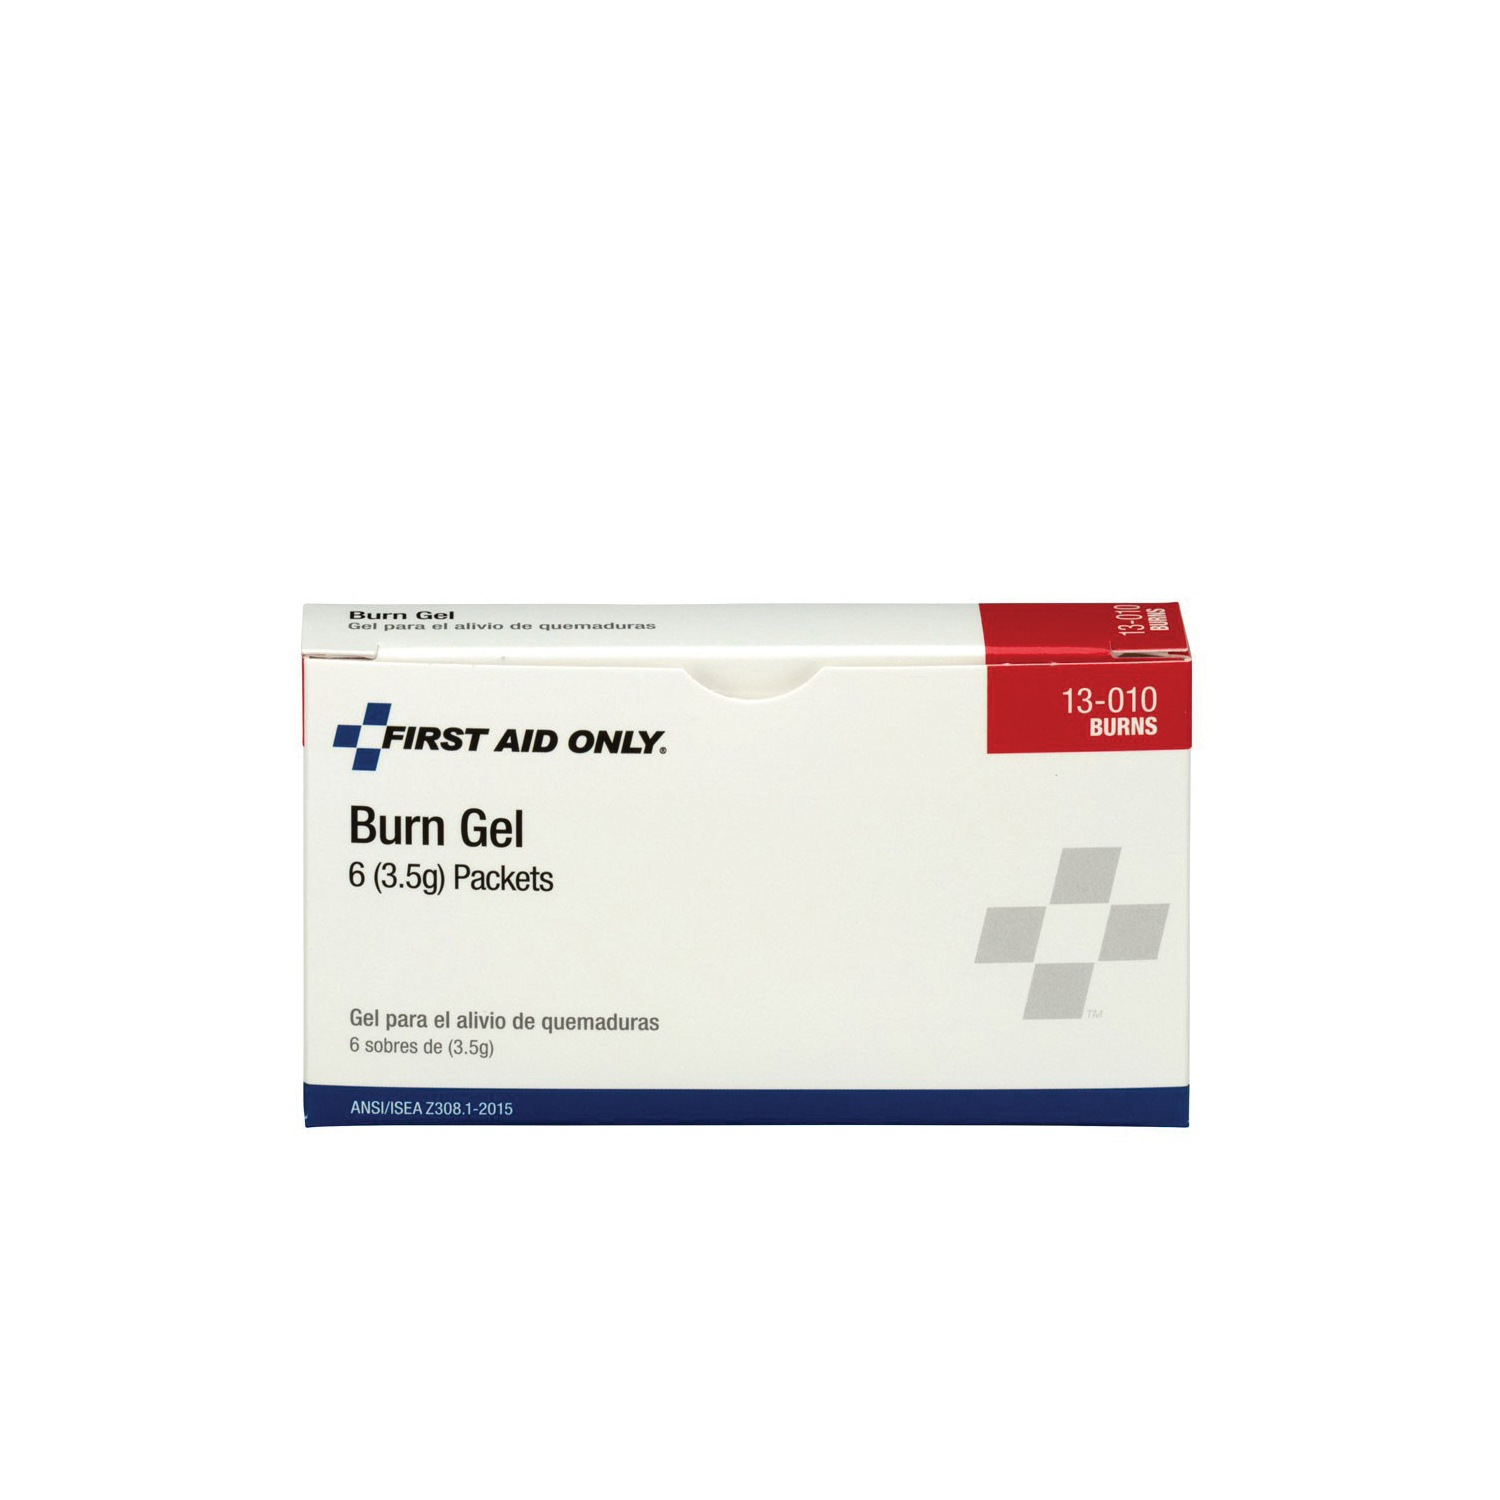 First Aid Only® 13-010 Burn Gel Packet